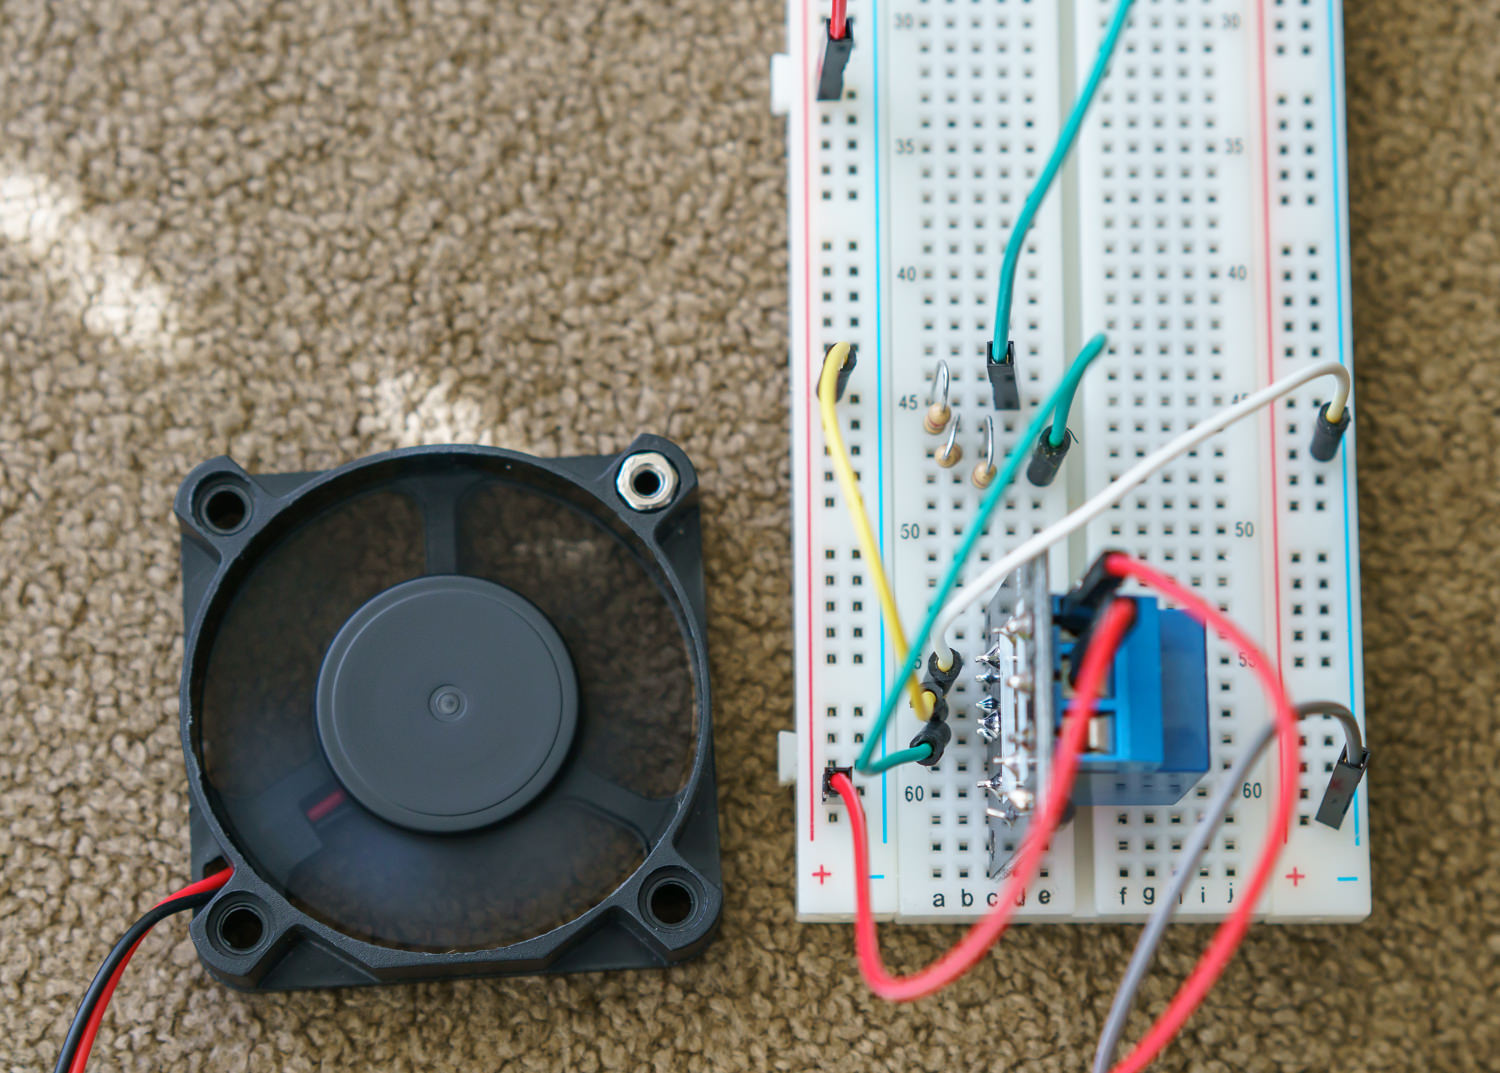 Getting Started With Raspberry Pi Reverse Camera Wiring Overclockers Uk Forums It Bakes In The Necessary Transistor And Some Safeguards Like A Flyback Spike Protection Diode For Relay Coil Again Theres More To Read About On